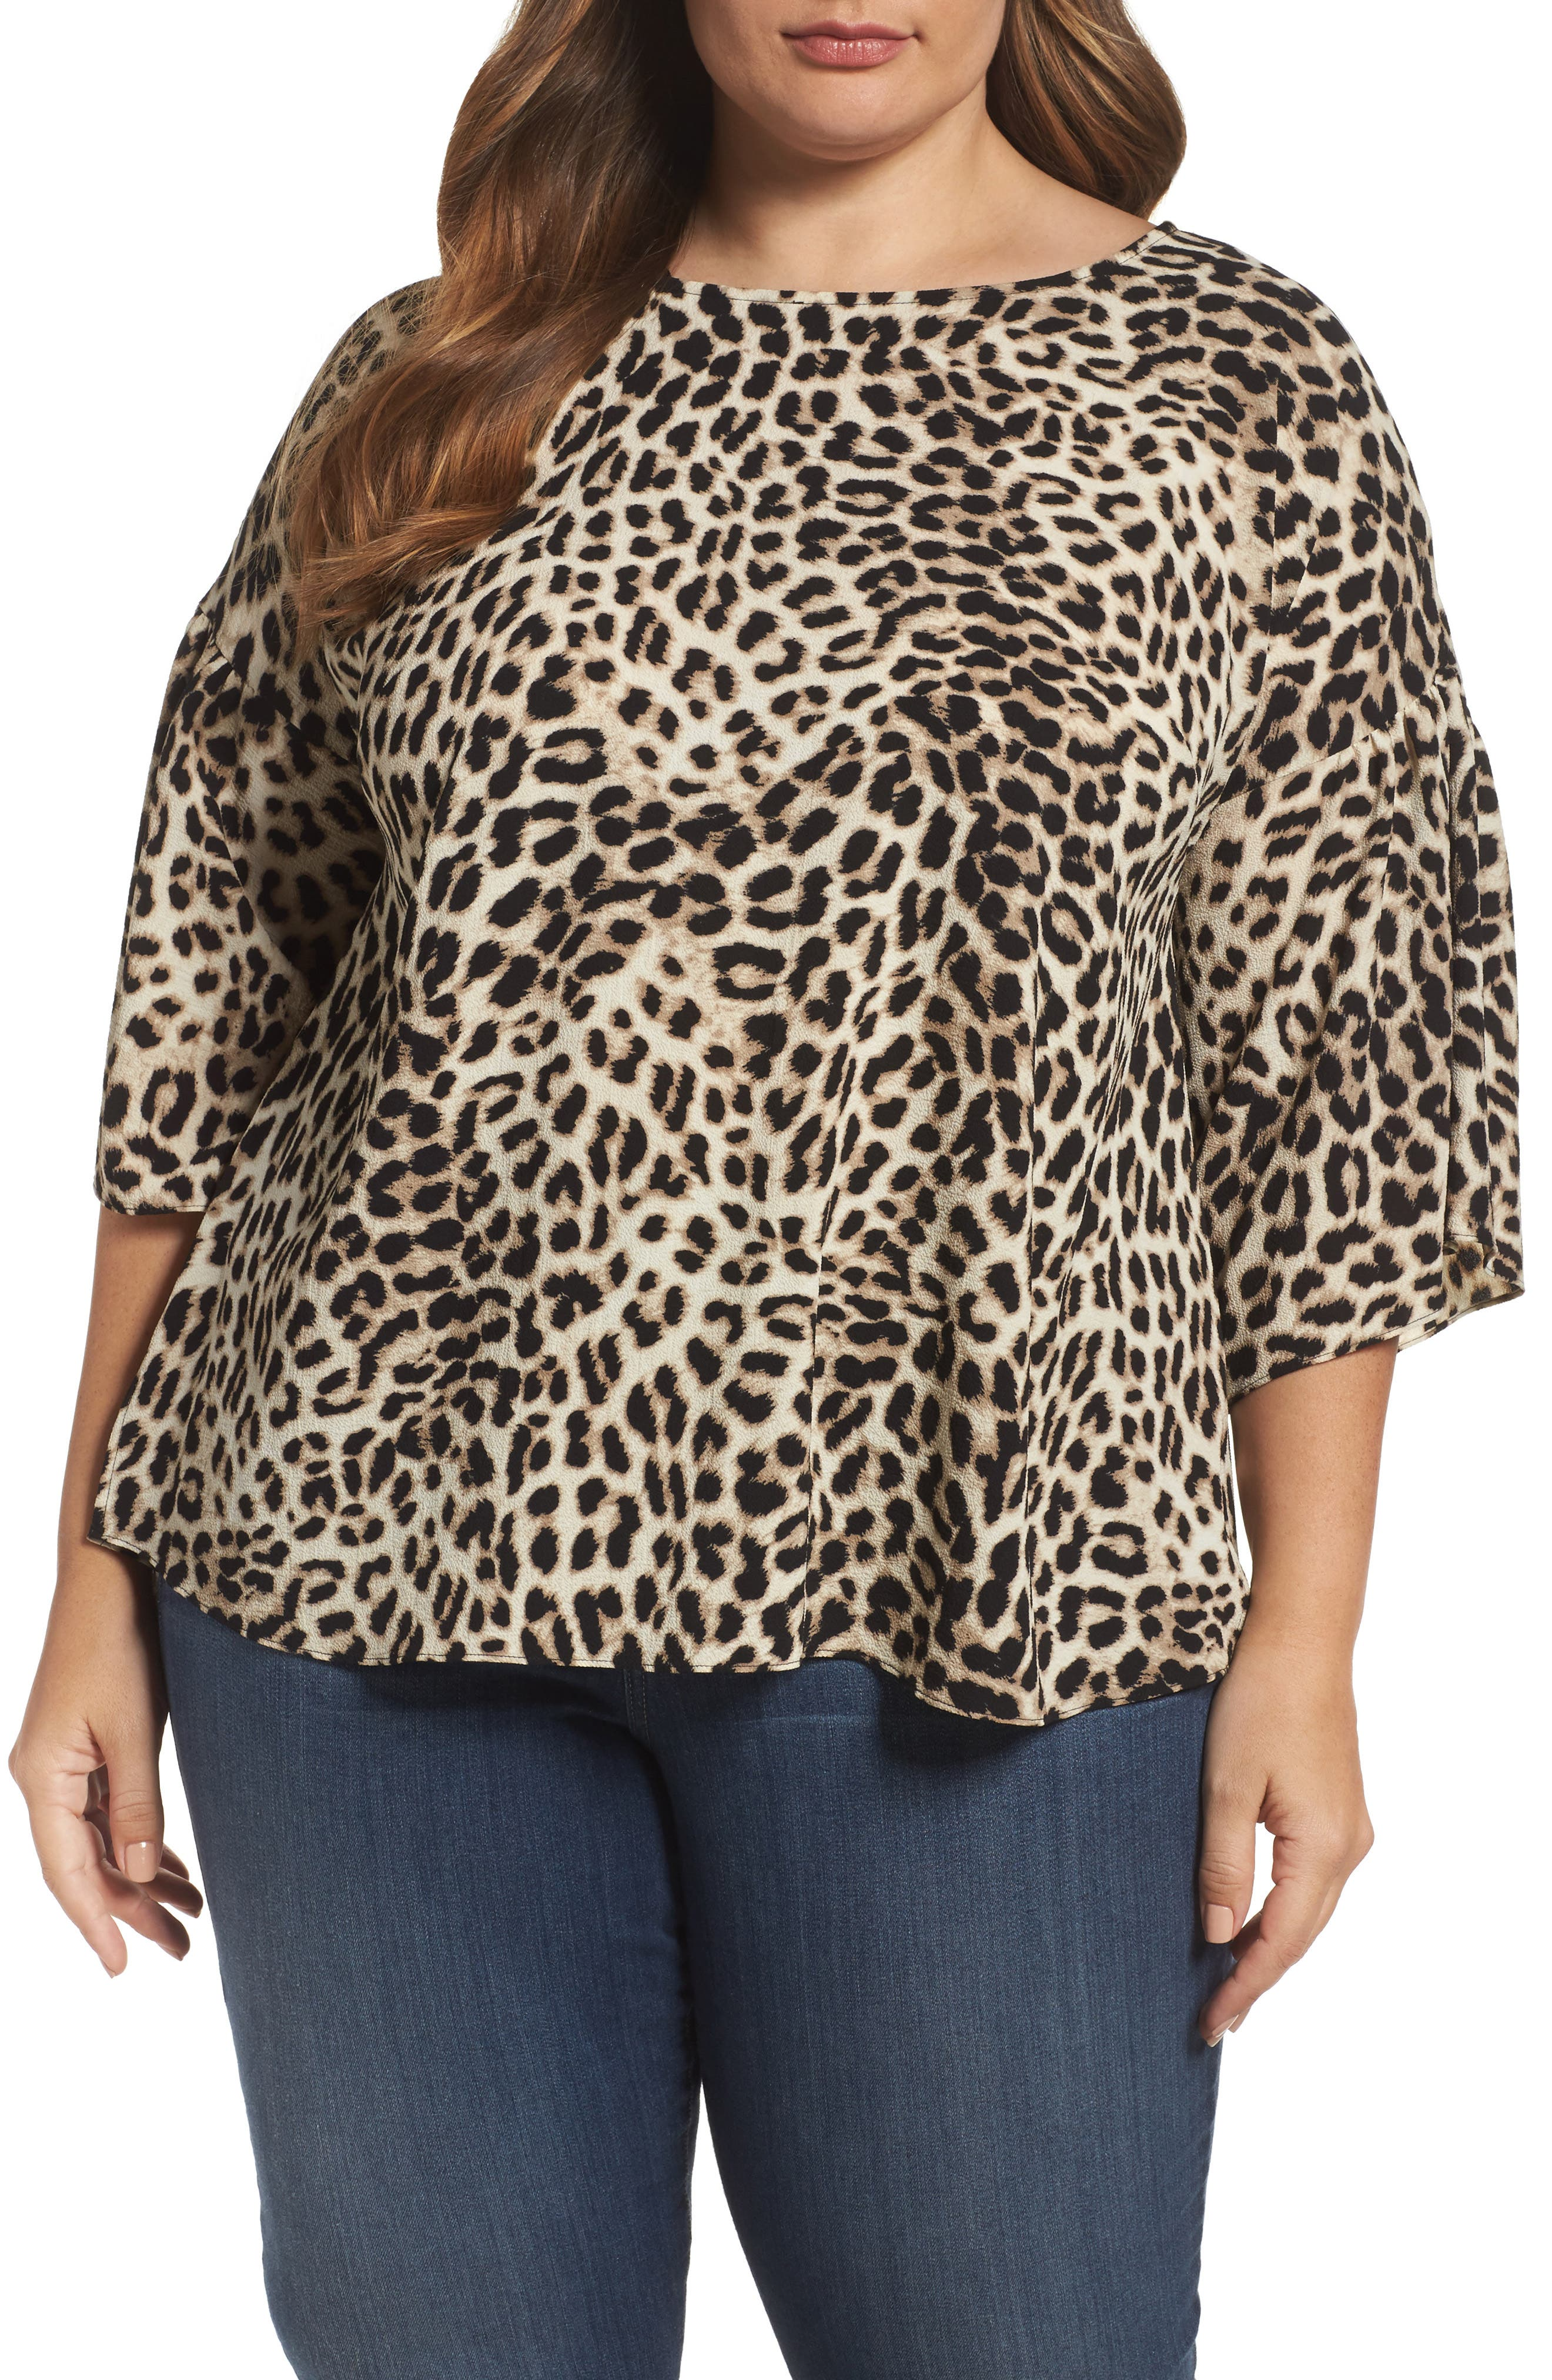 Alternate Image 1 Selected - Vince Camuto Leopard Song Bell Sleeve Blouse (Plus Size)